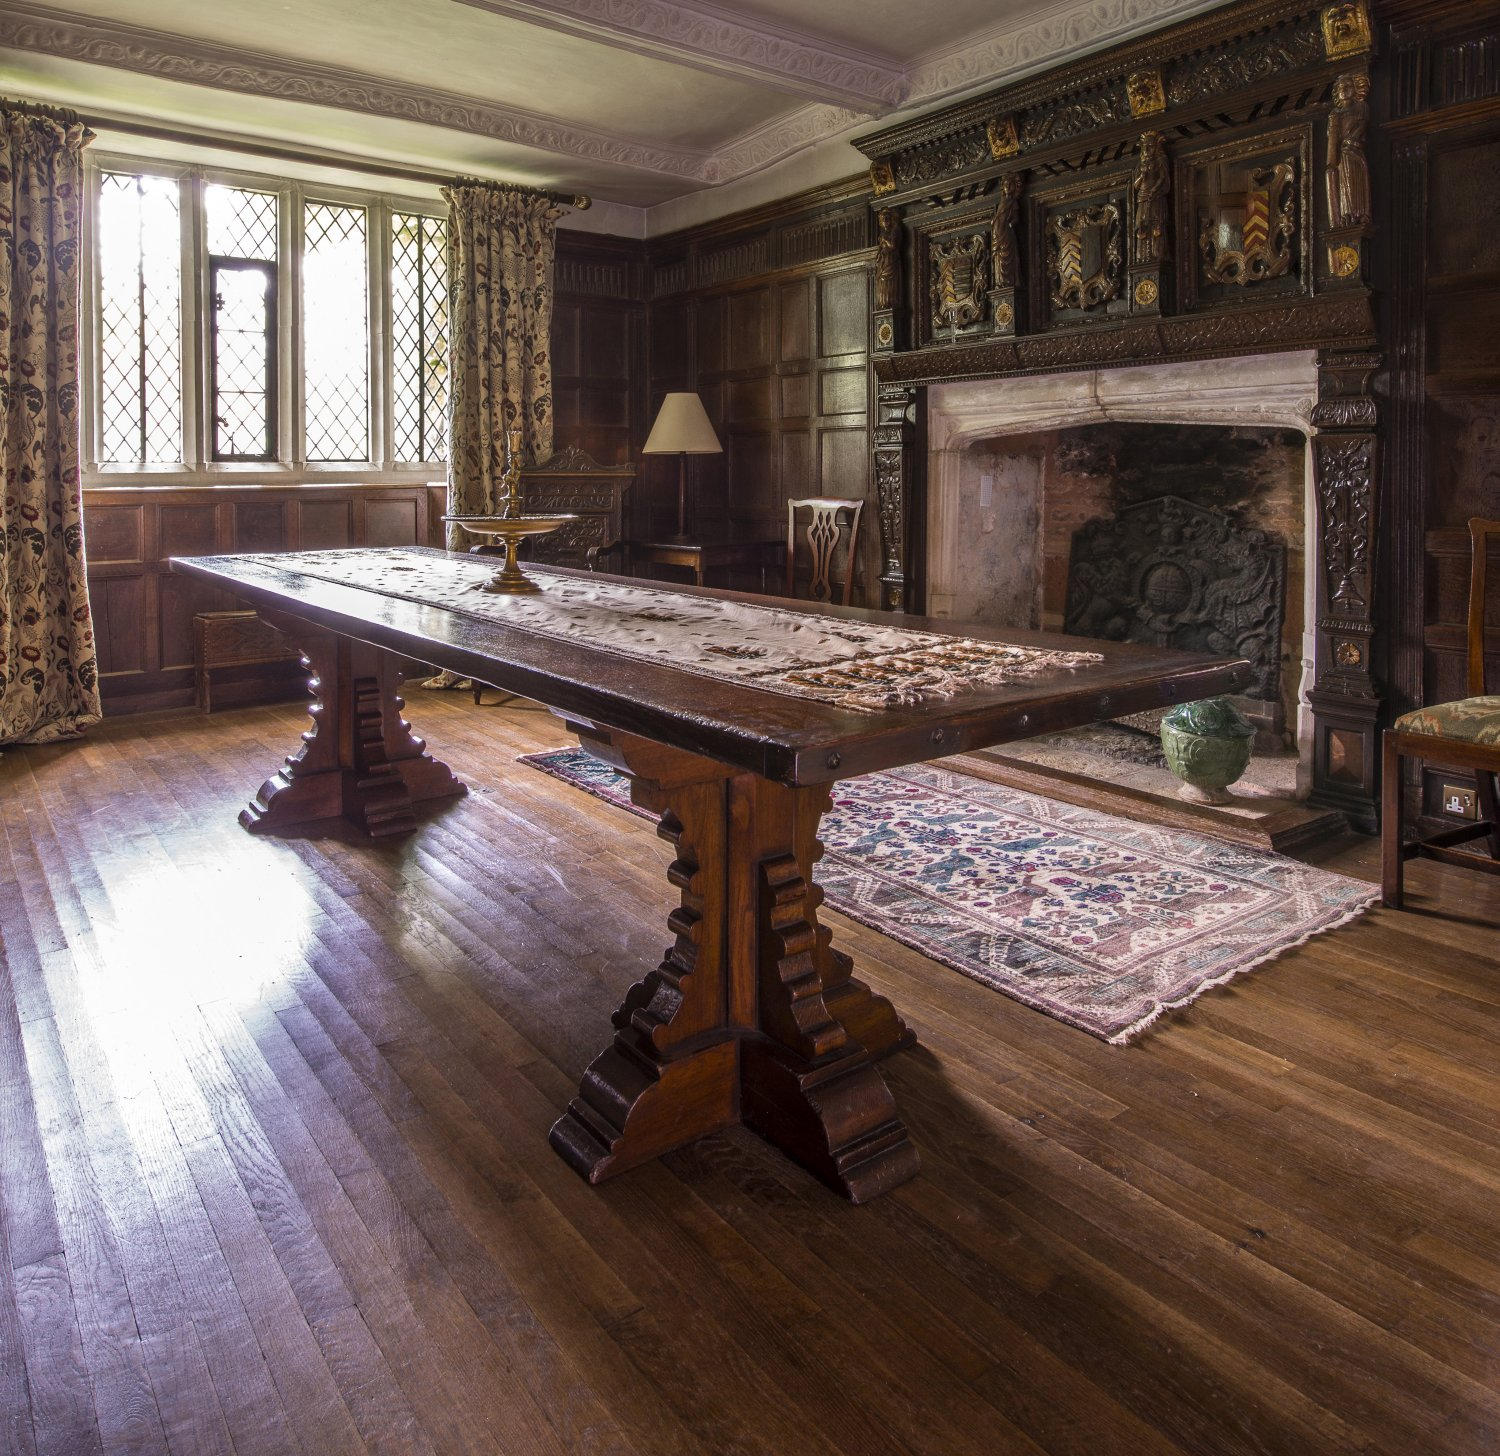 Medieval Cruciform Table in the Dining Room